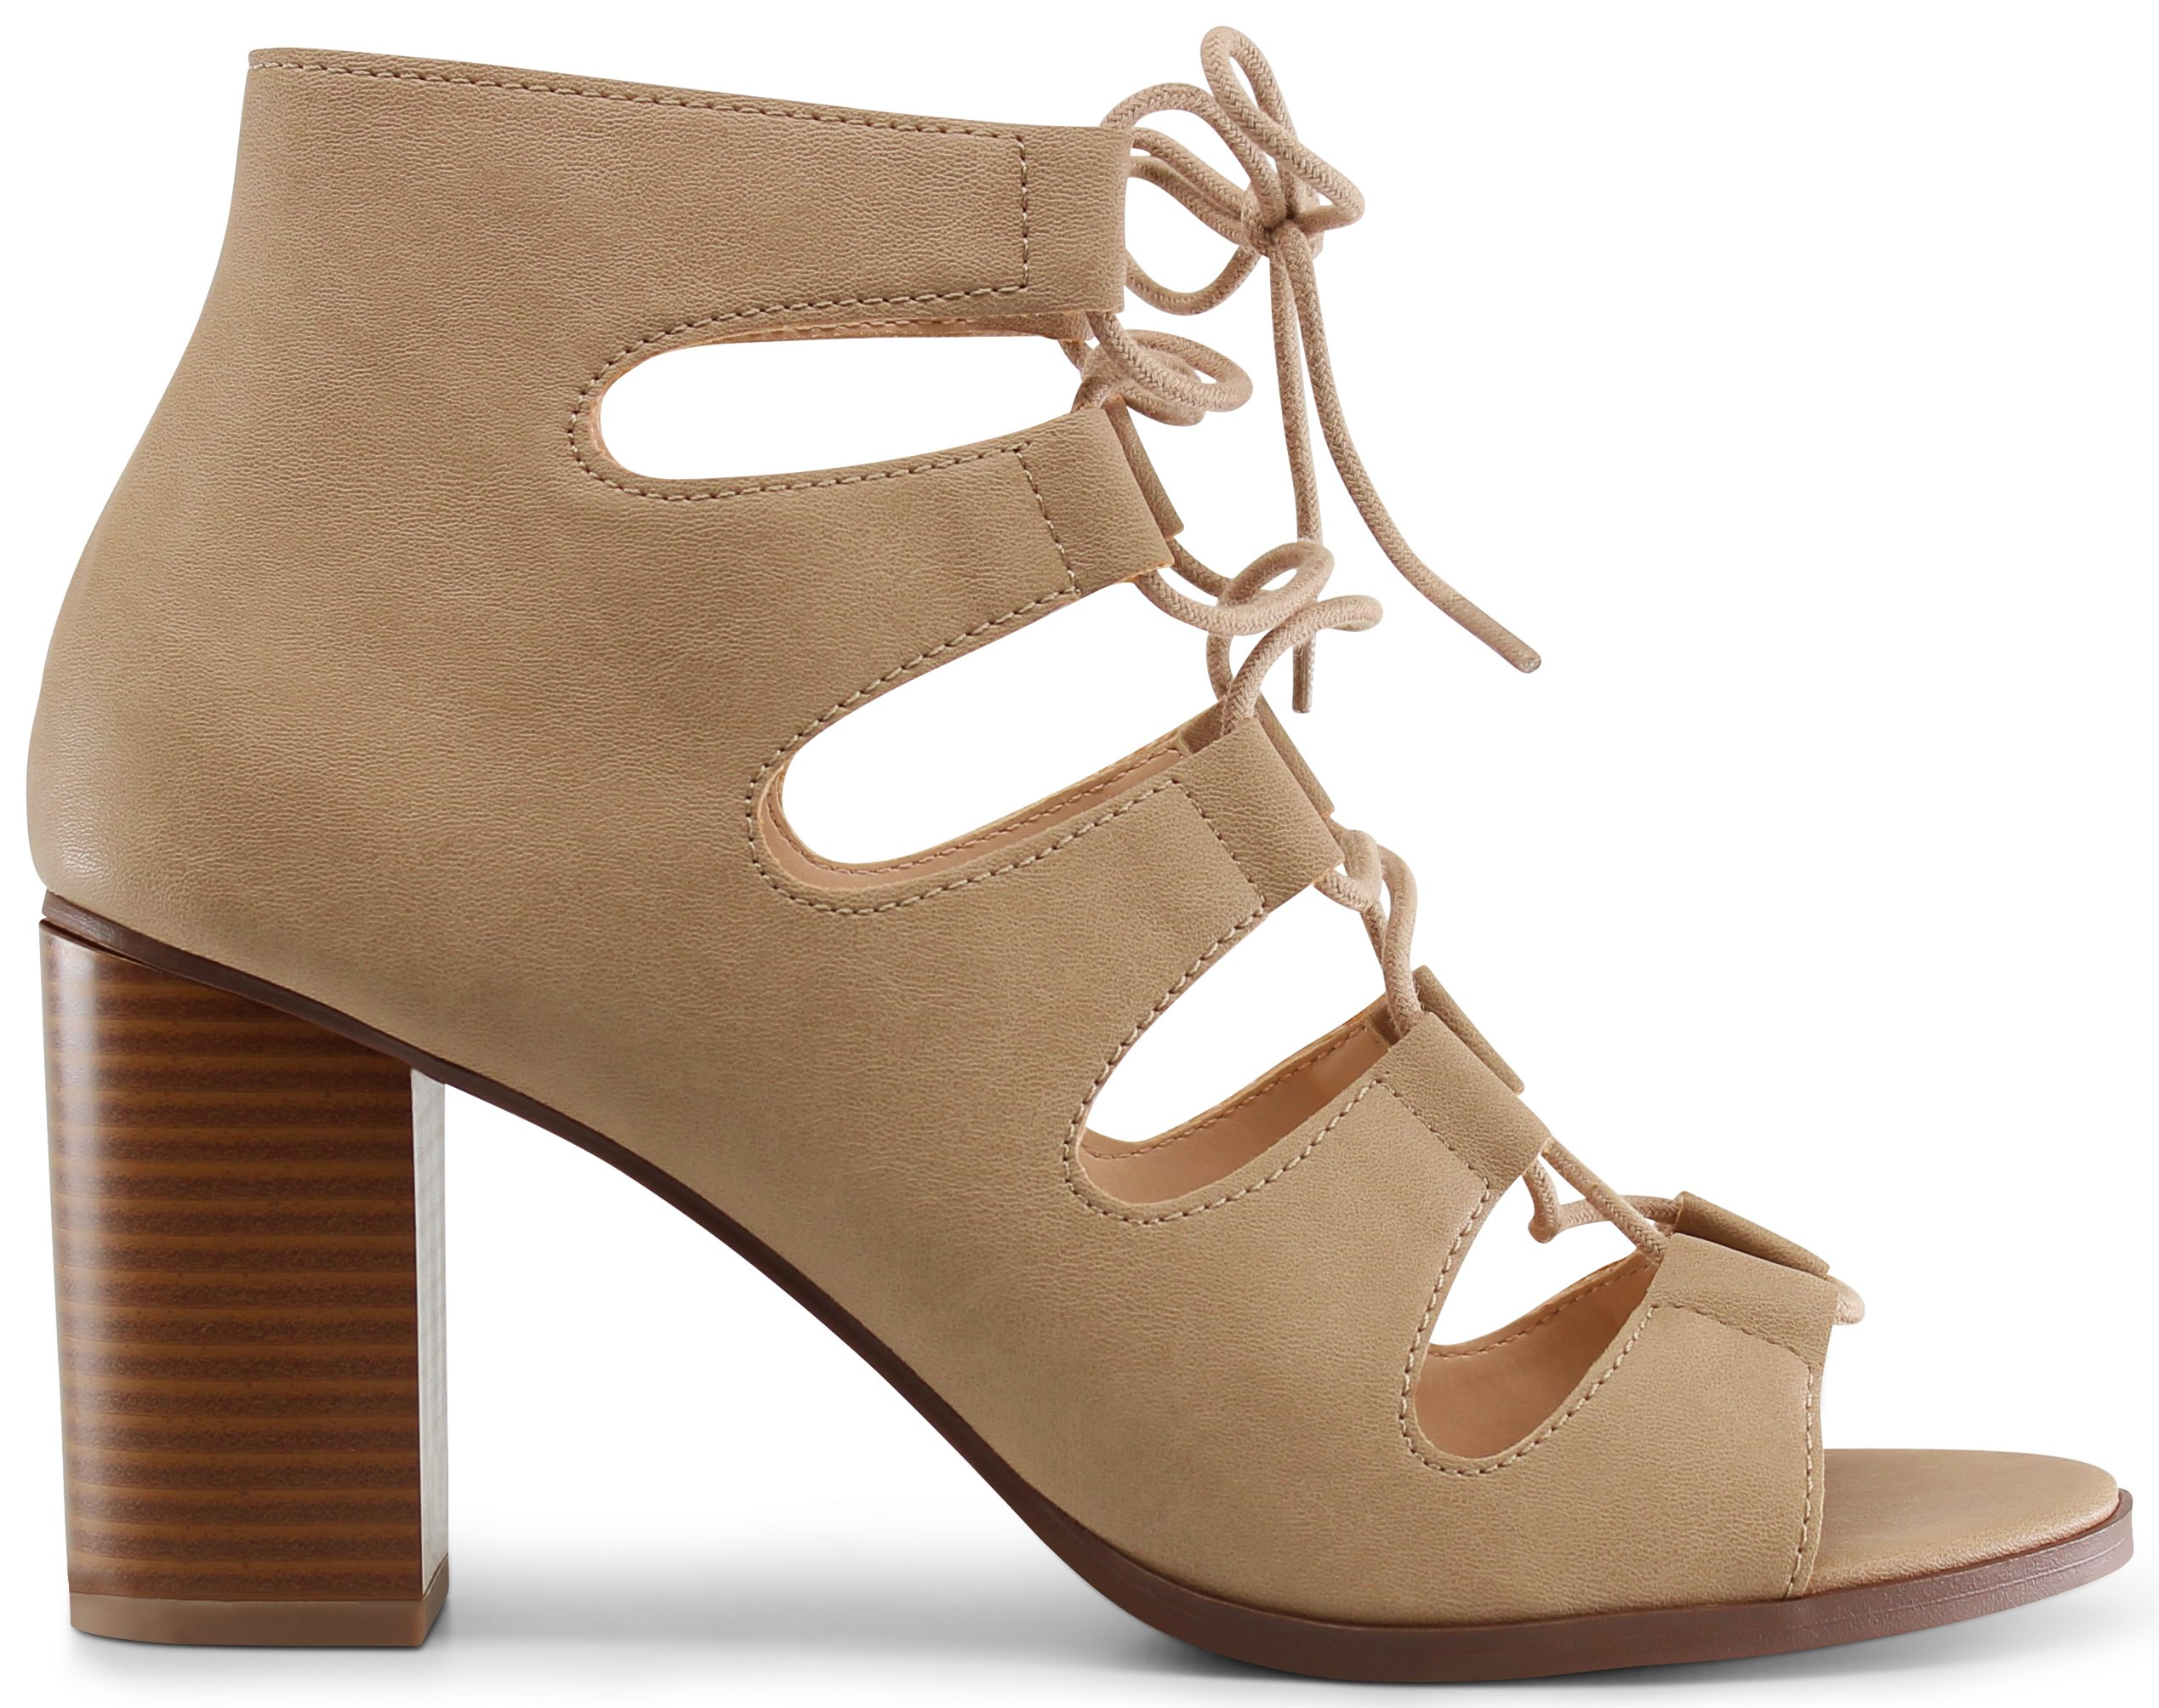 Marco Republic Edinburgh Peep Toe Gladiator Chunky Block Stacked Heels Sandals Pumps Booties - (Taupe PU) - 8